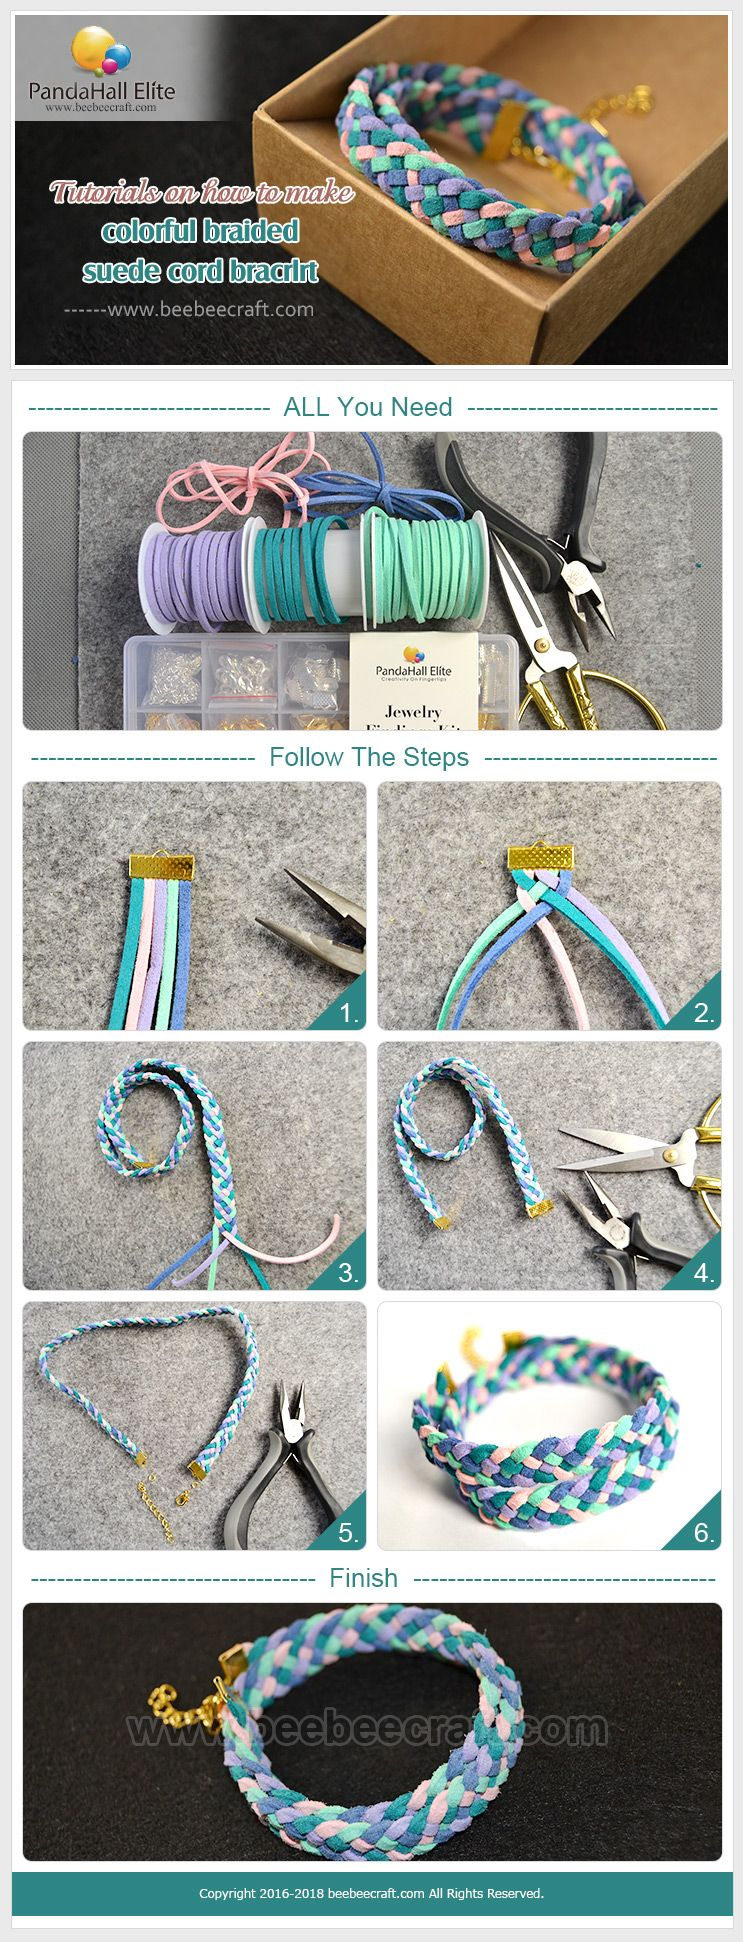 Beebeecraft tutorials on how to make colorful braided suedecord